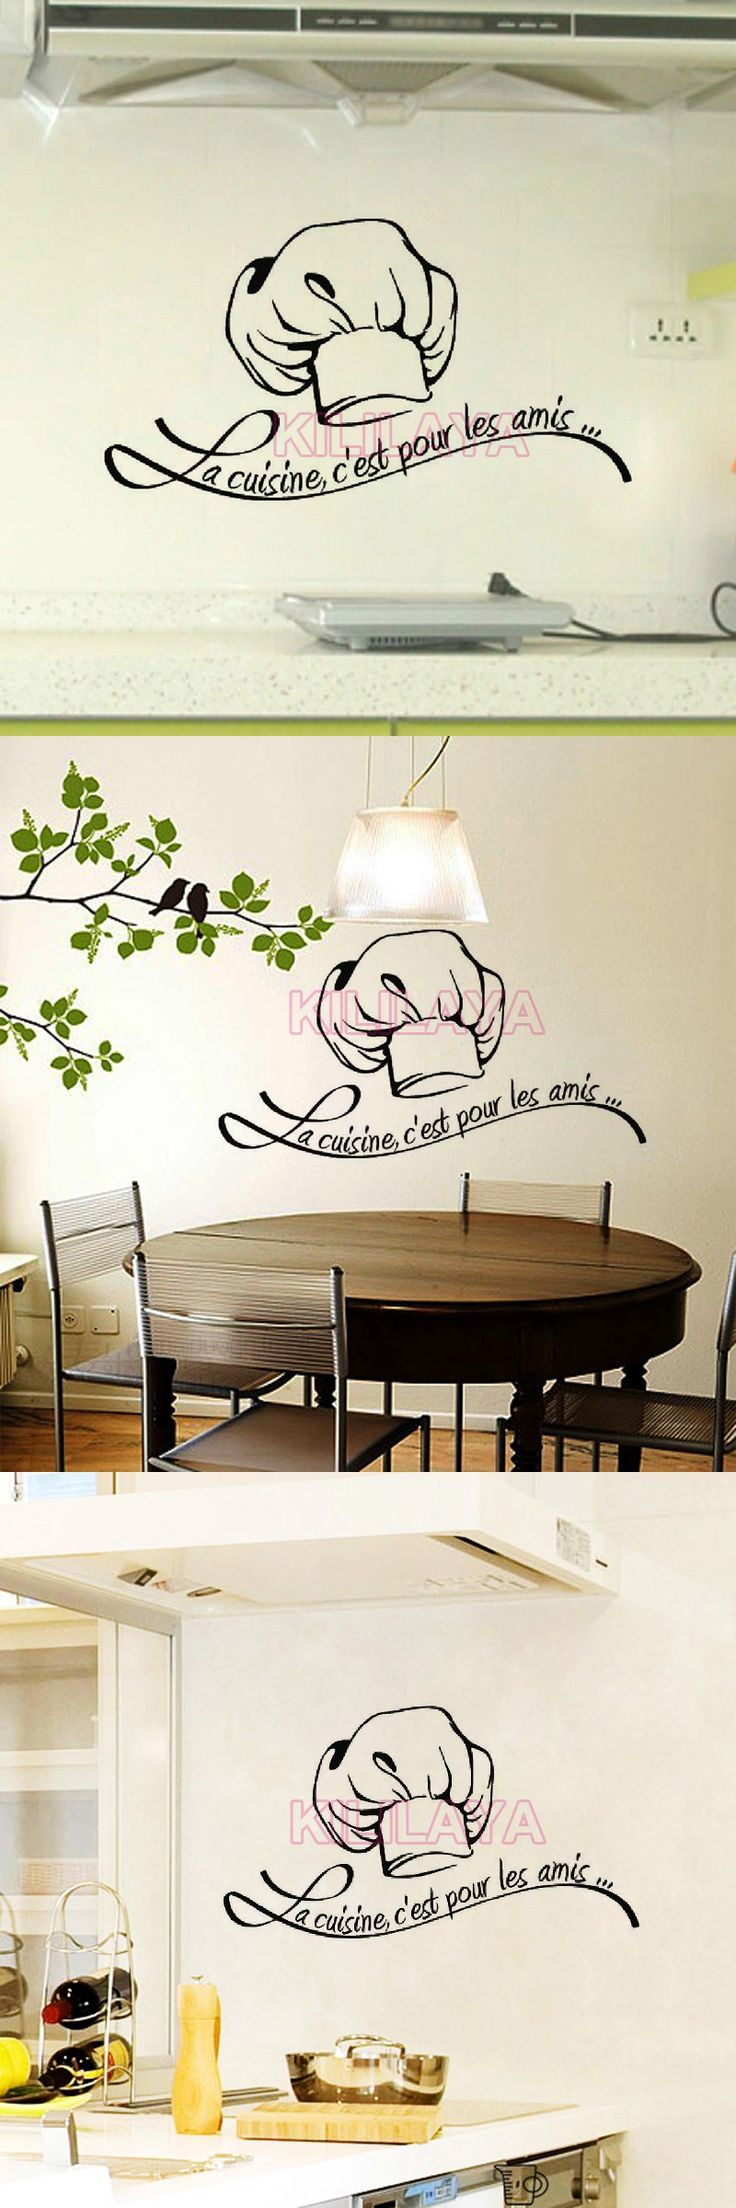 Best 25 wall stickers for kitchen ideas on pinterest kitchen vinyl walls sticker french cuisine tile wall stickers for kitchen mural wall decal art home decor house decoration amipublicfo Gallery